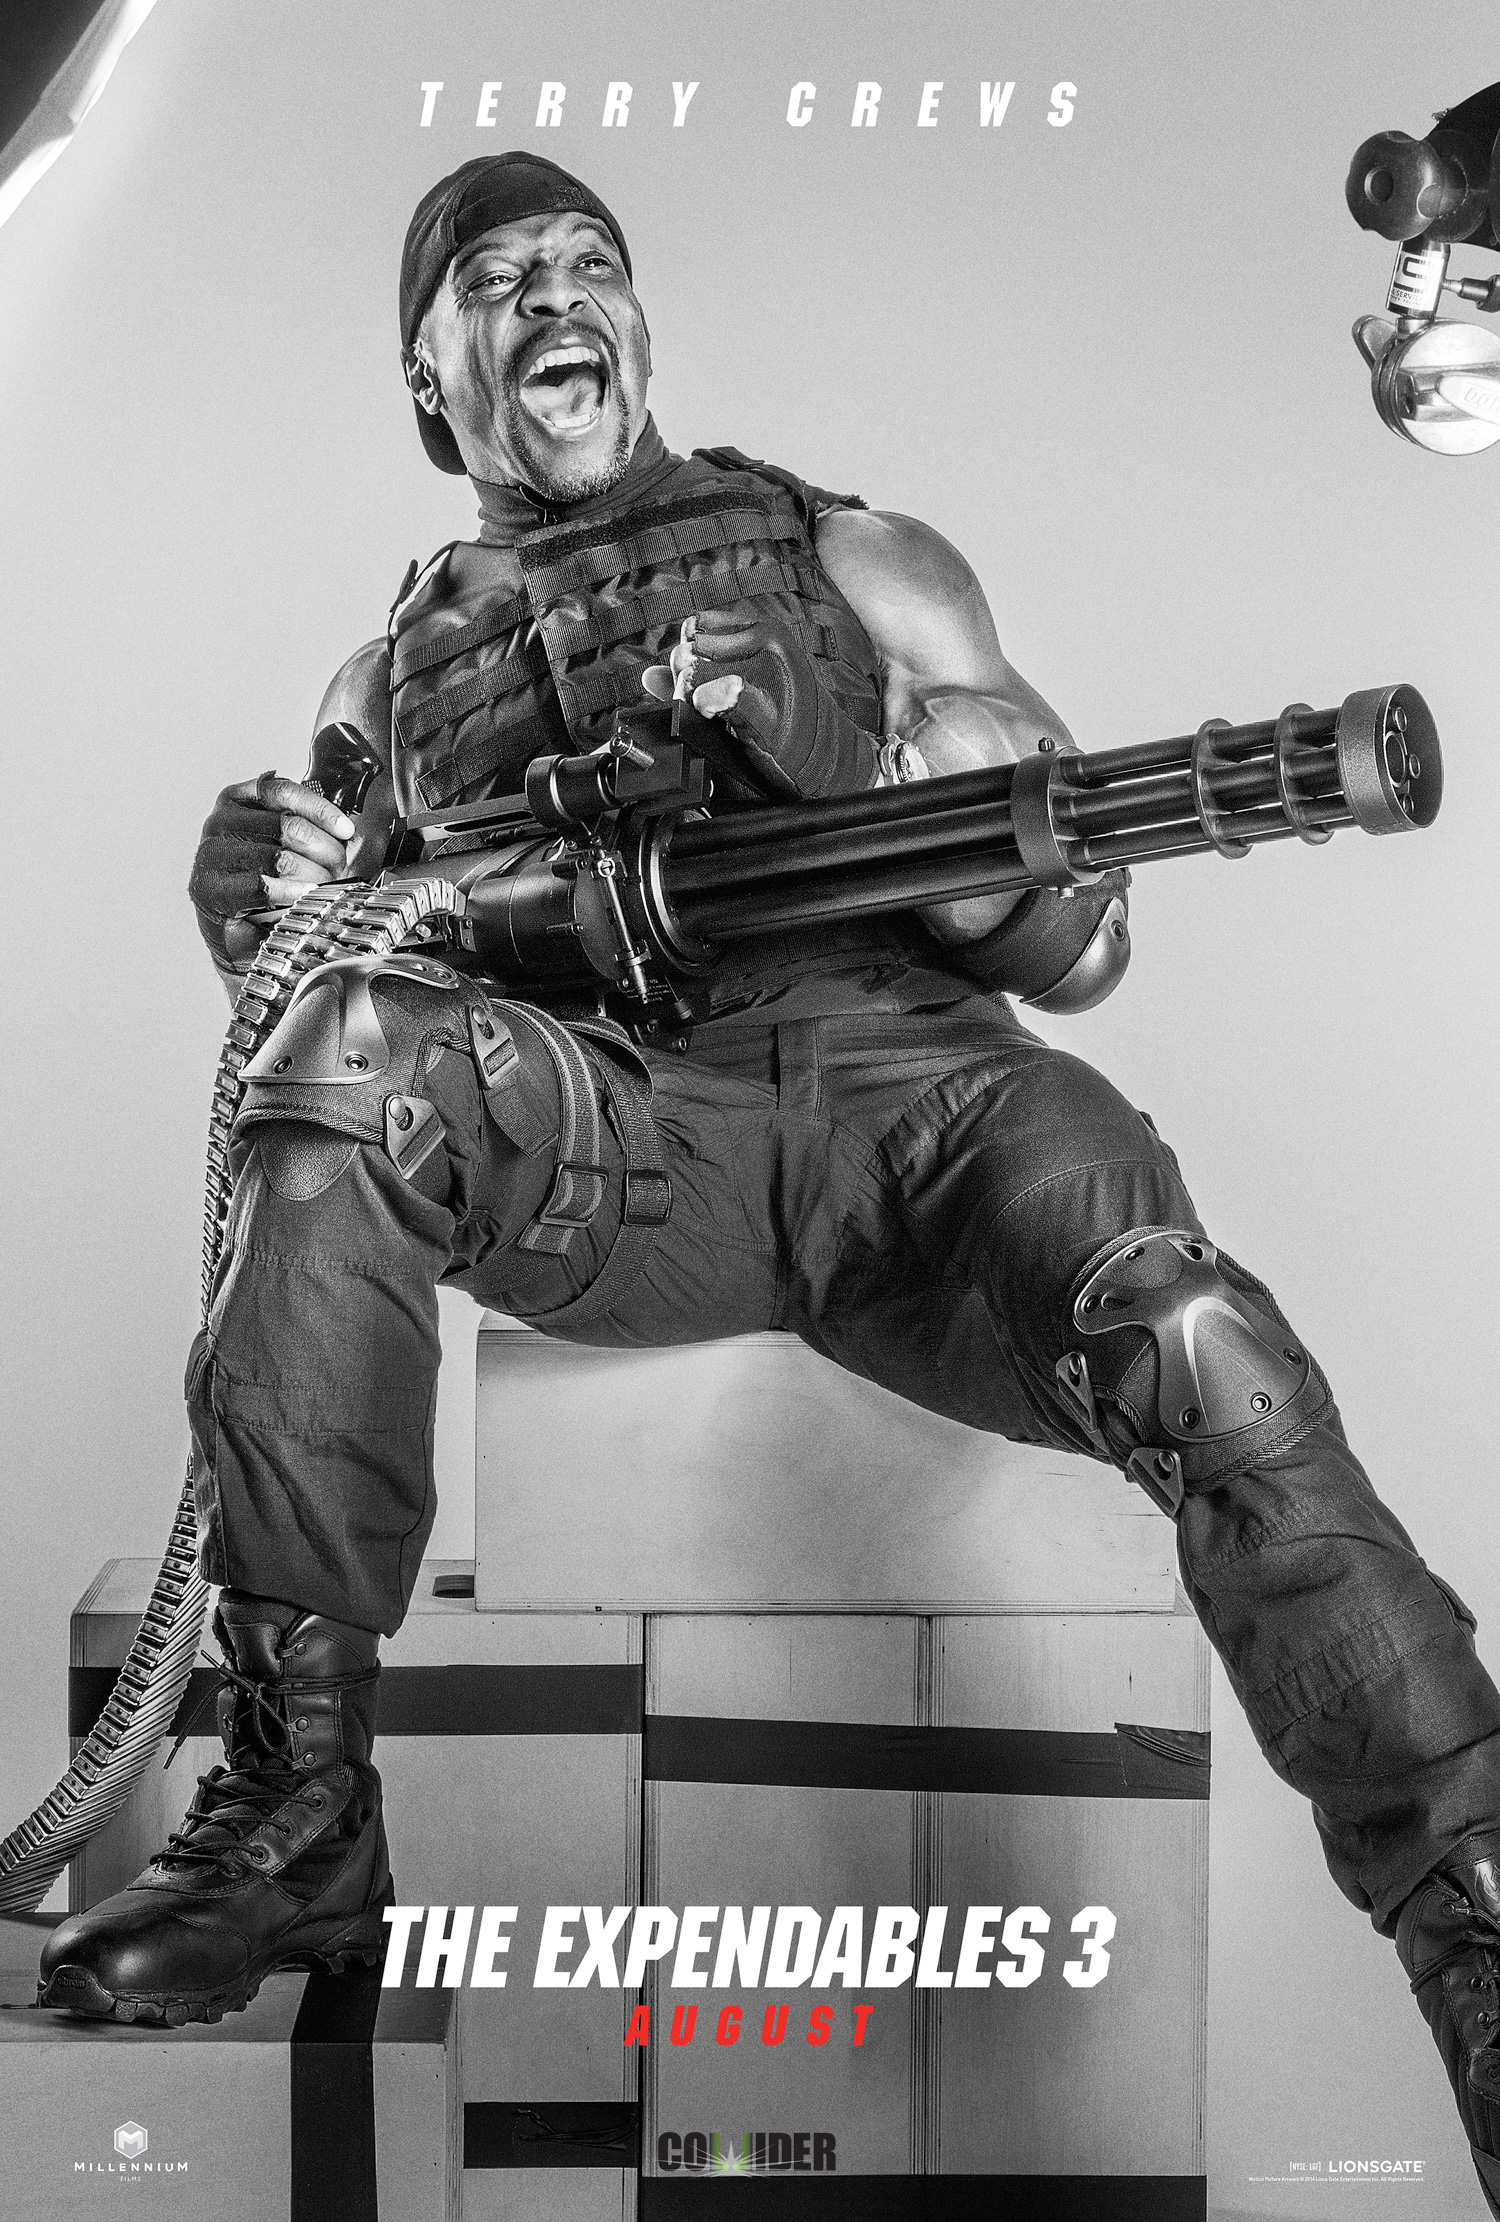 Terry-Crews-The-Expendables-3-poster.jpg